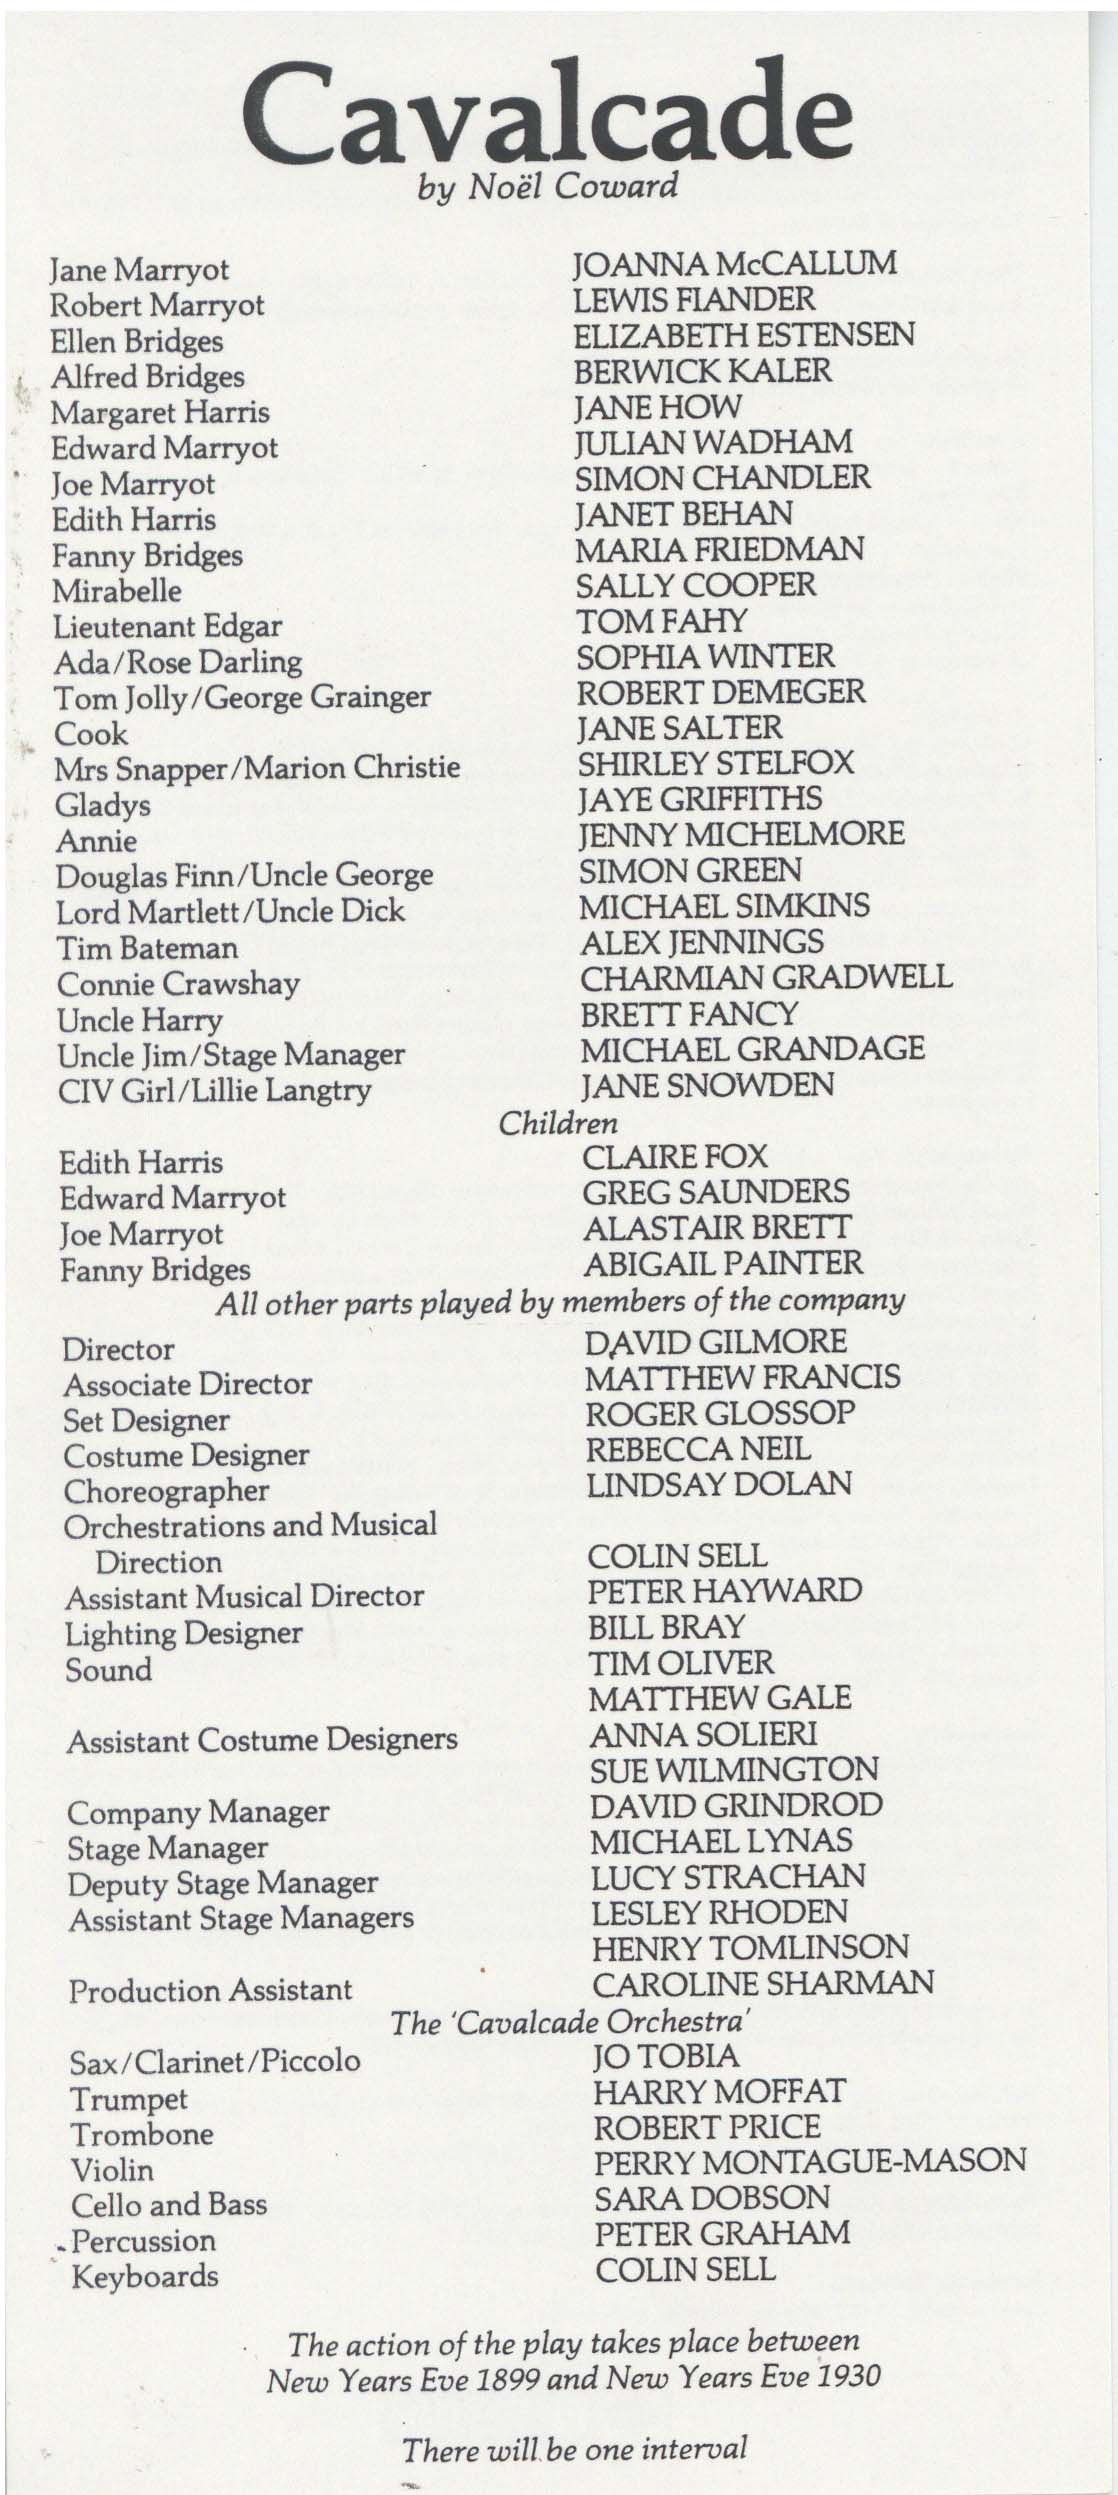 Cast List - Cavalcade - 1985 - 1 of 2